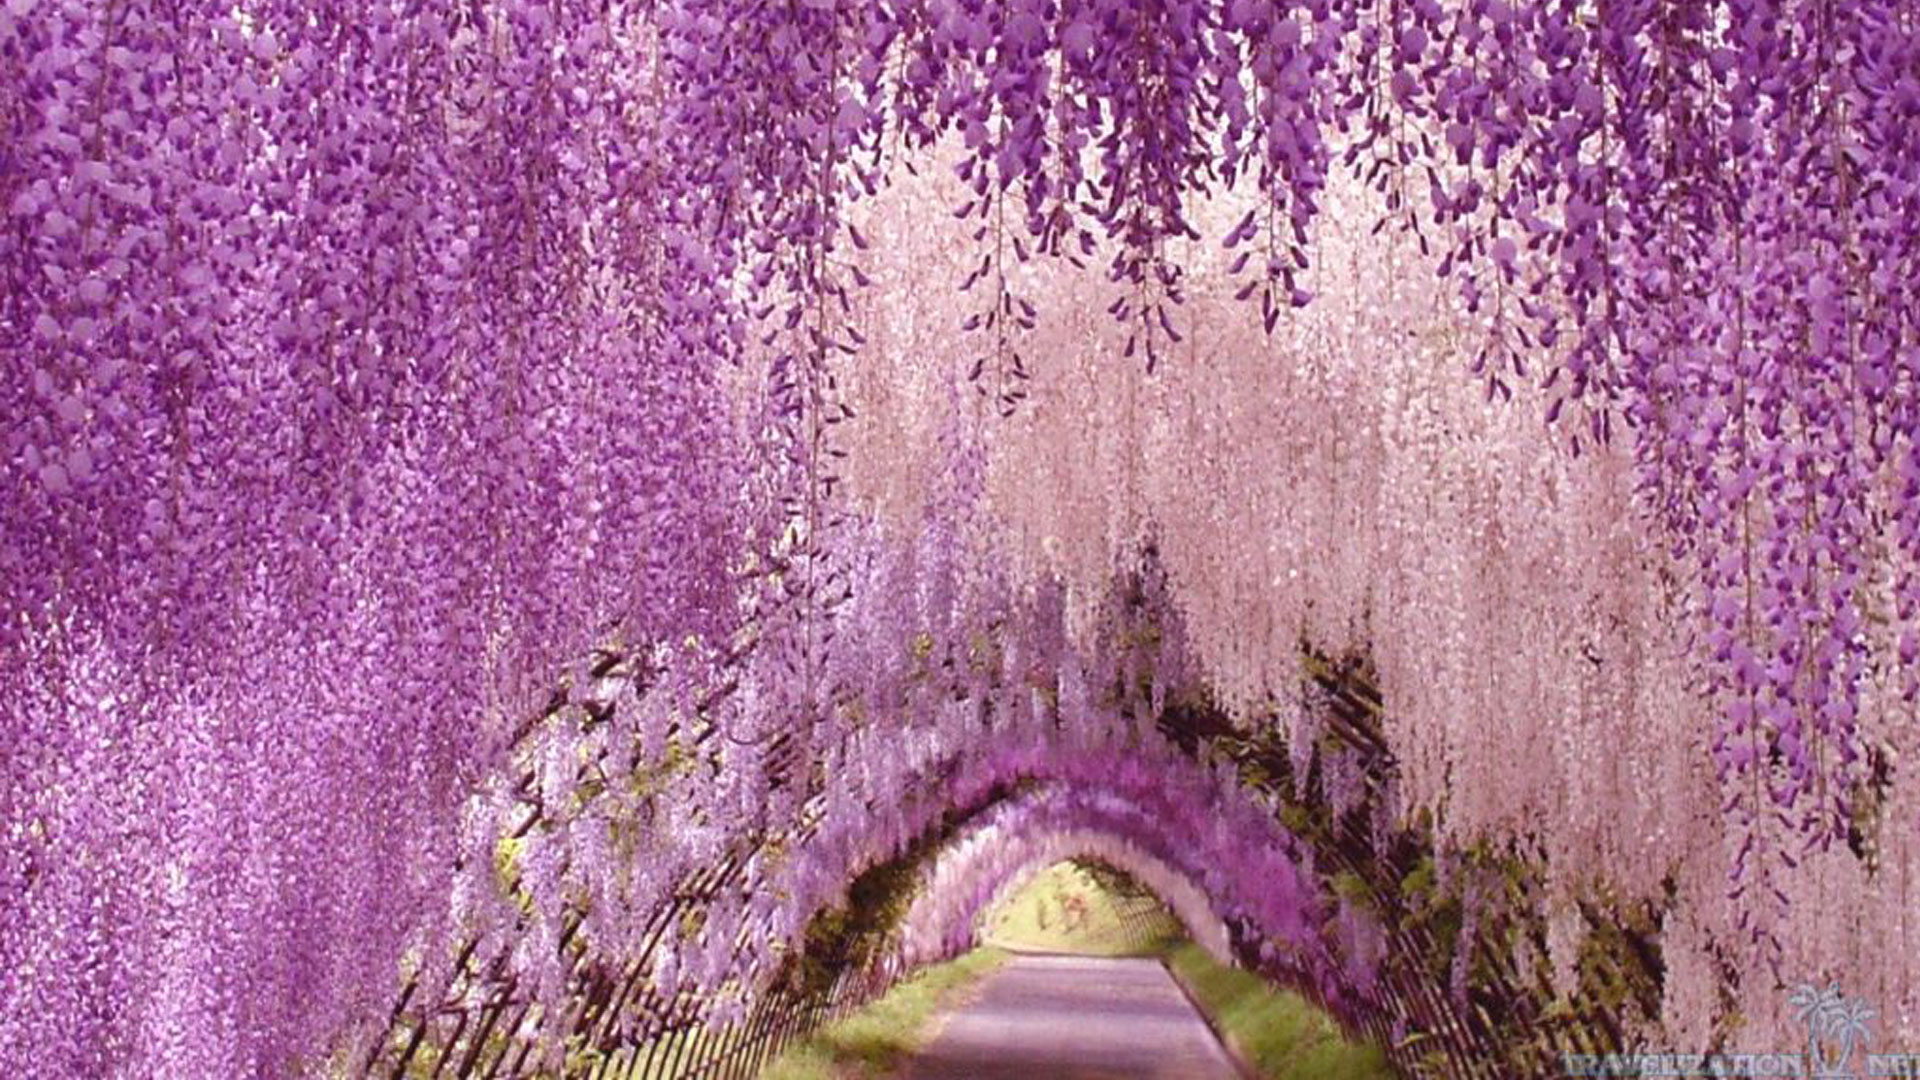 wallpaper-Ashikaga-flower-park-awesome2.jpg